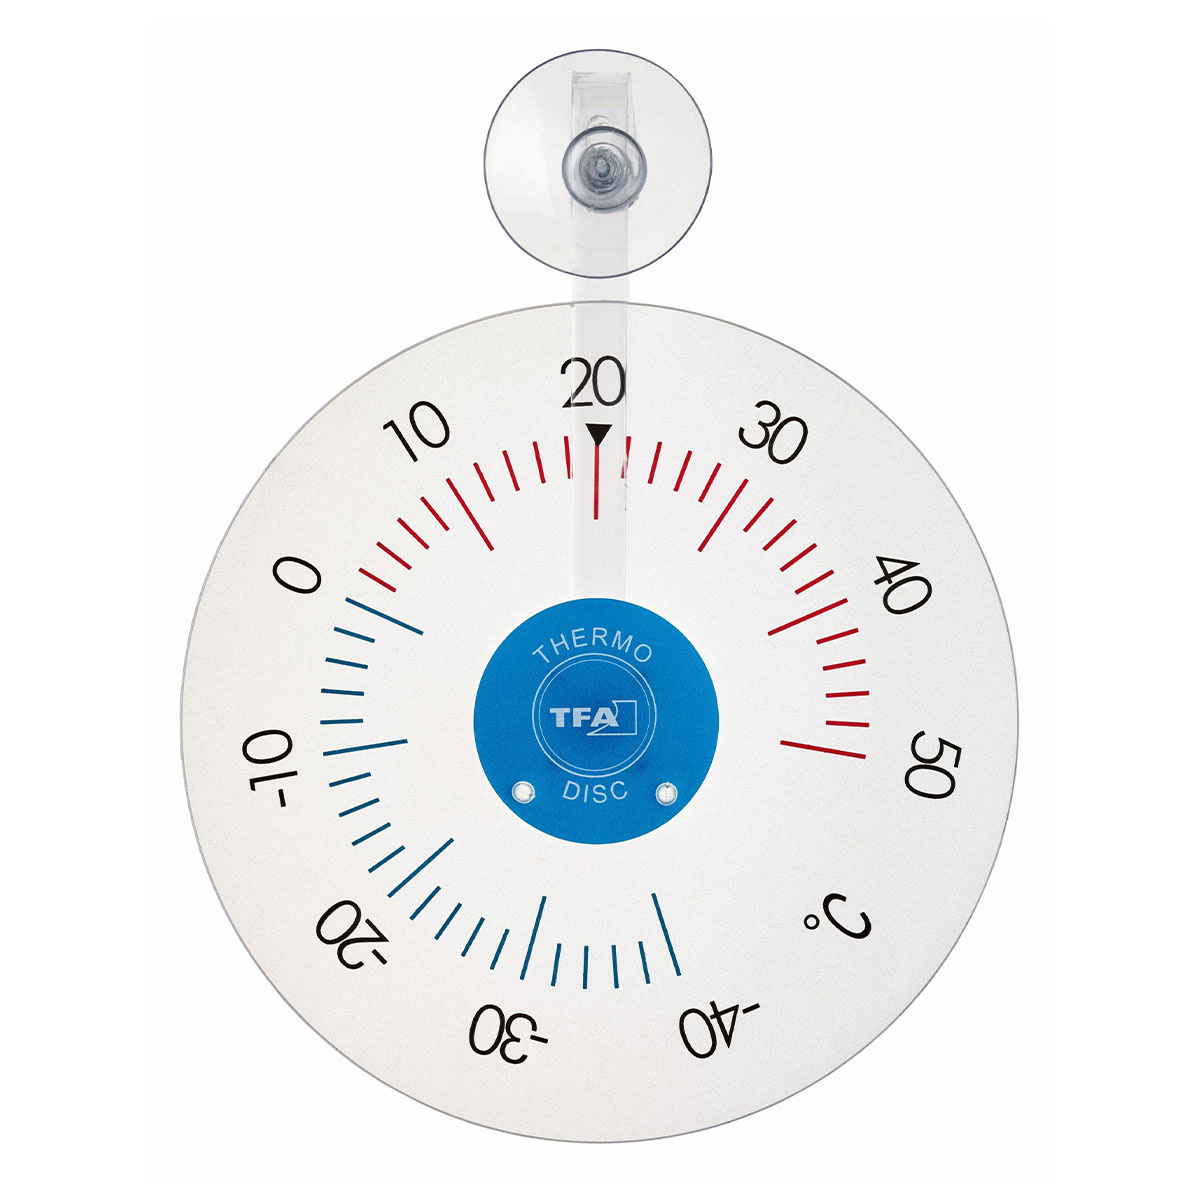 14-6020-analoges-fensterthermometer-thermo-disc-1200x1200px.jpg